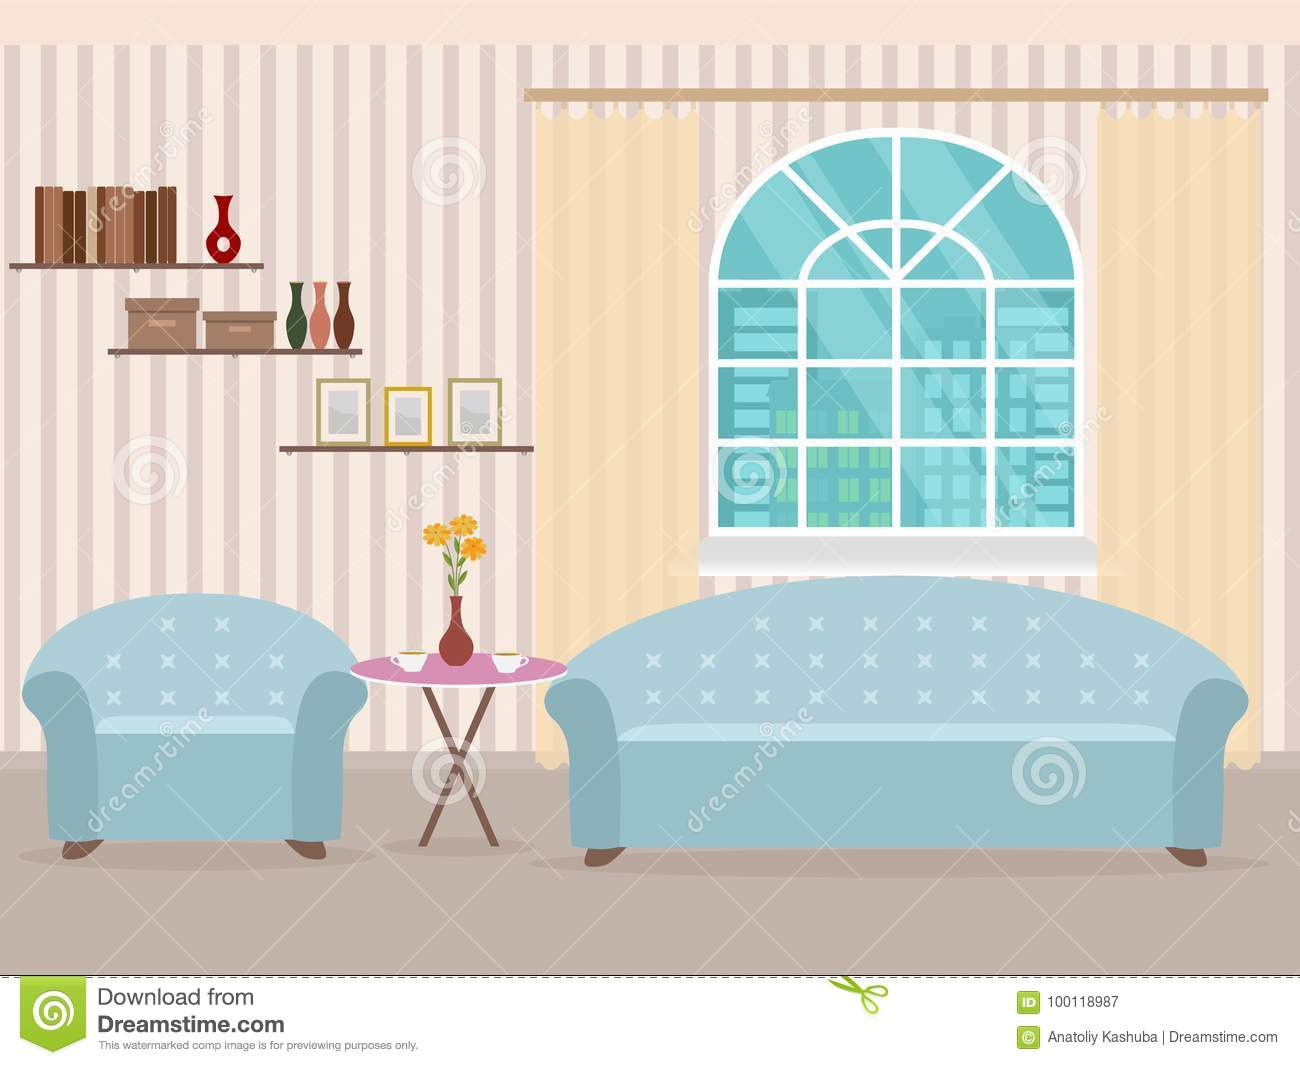 Interior design in flat style of living room with furniture, sofa, table, bookshelf, flower, armchair and window.